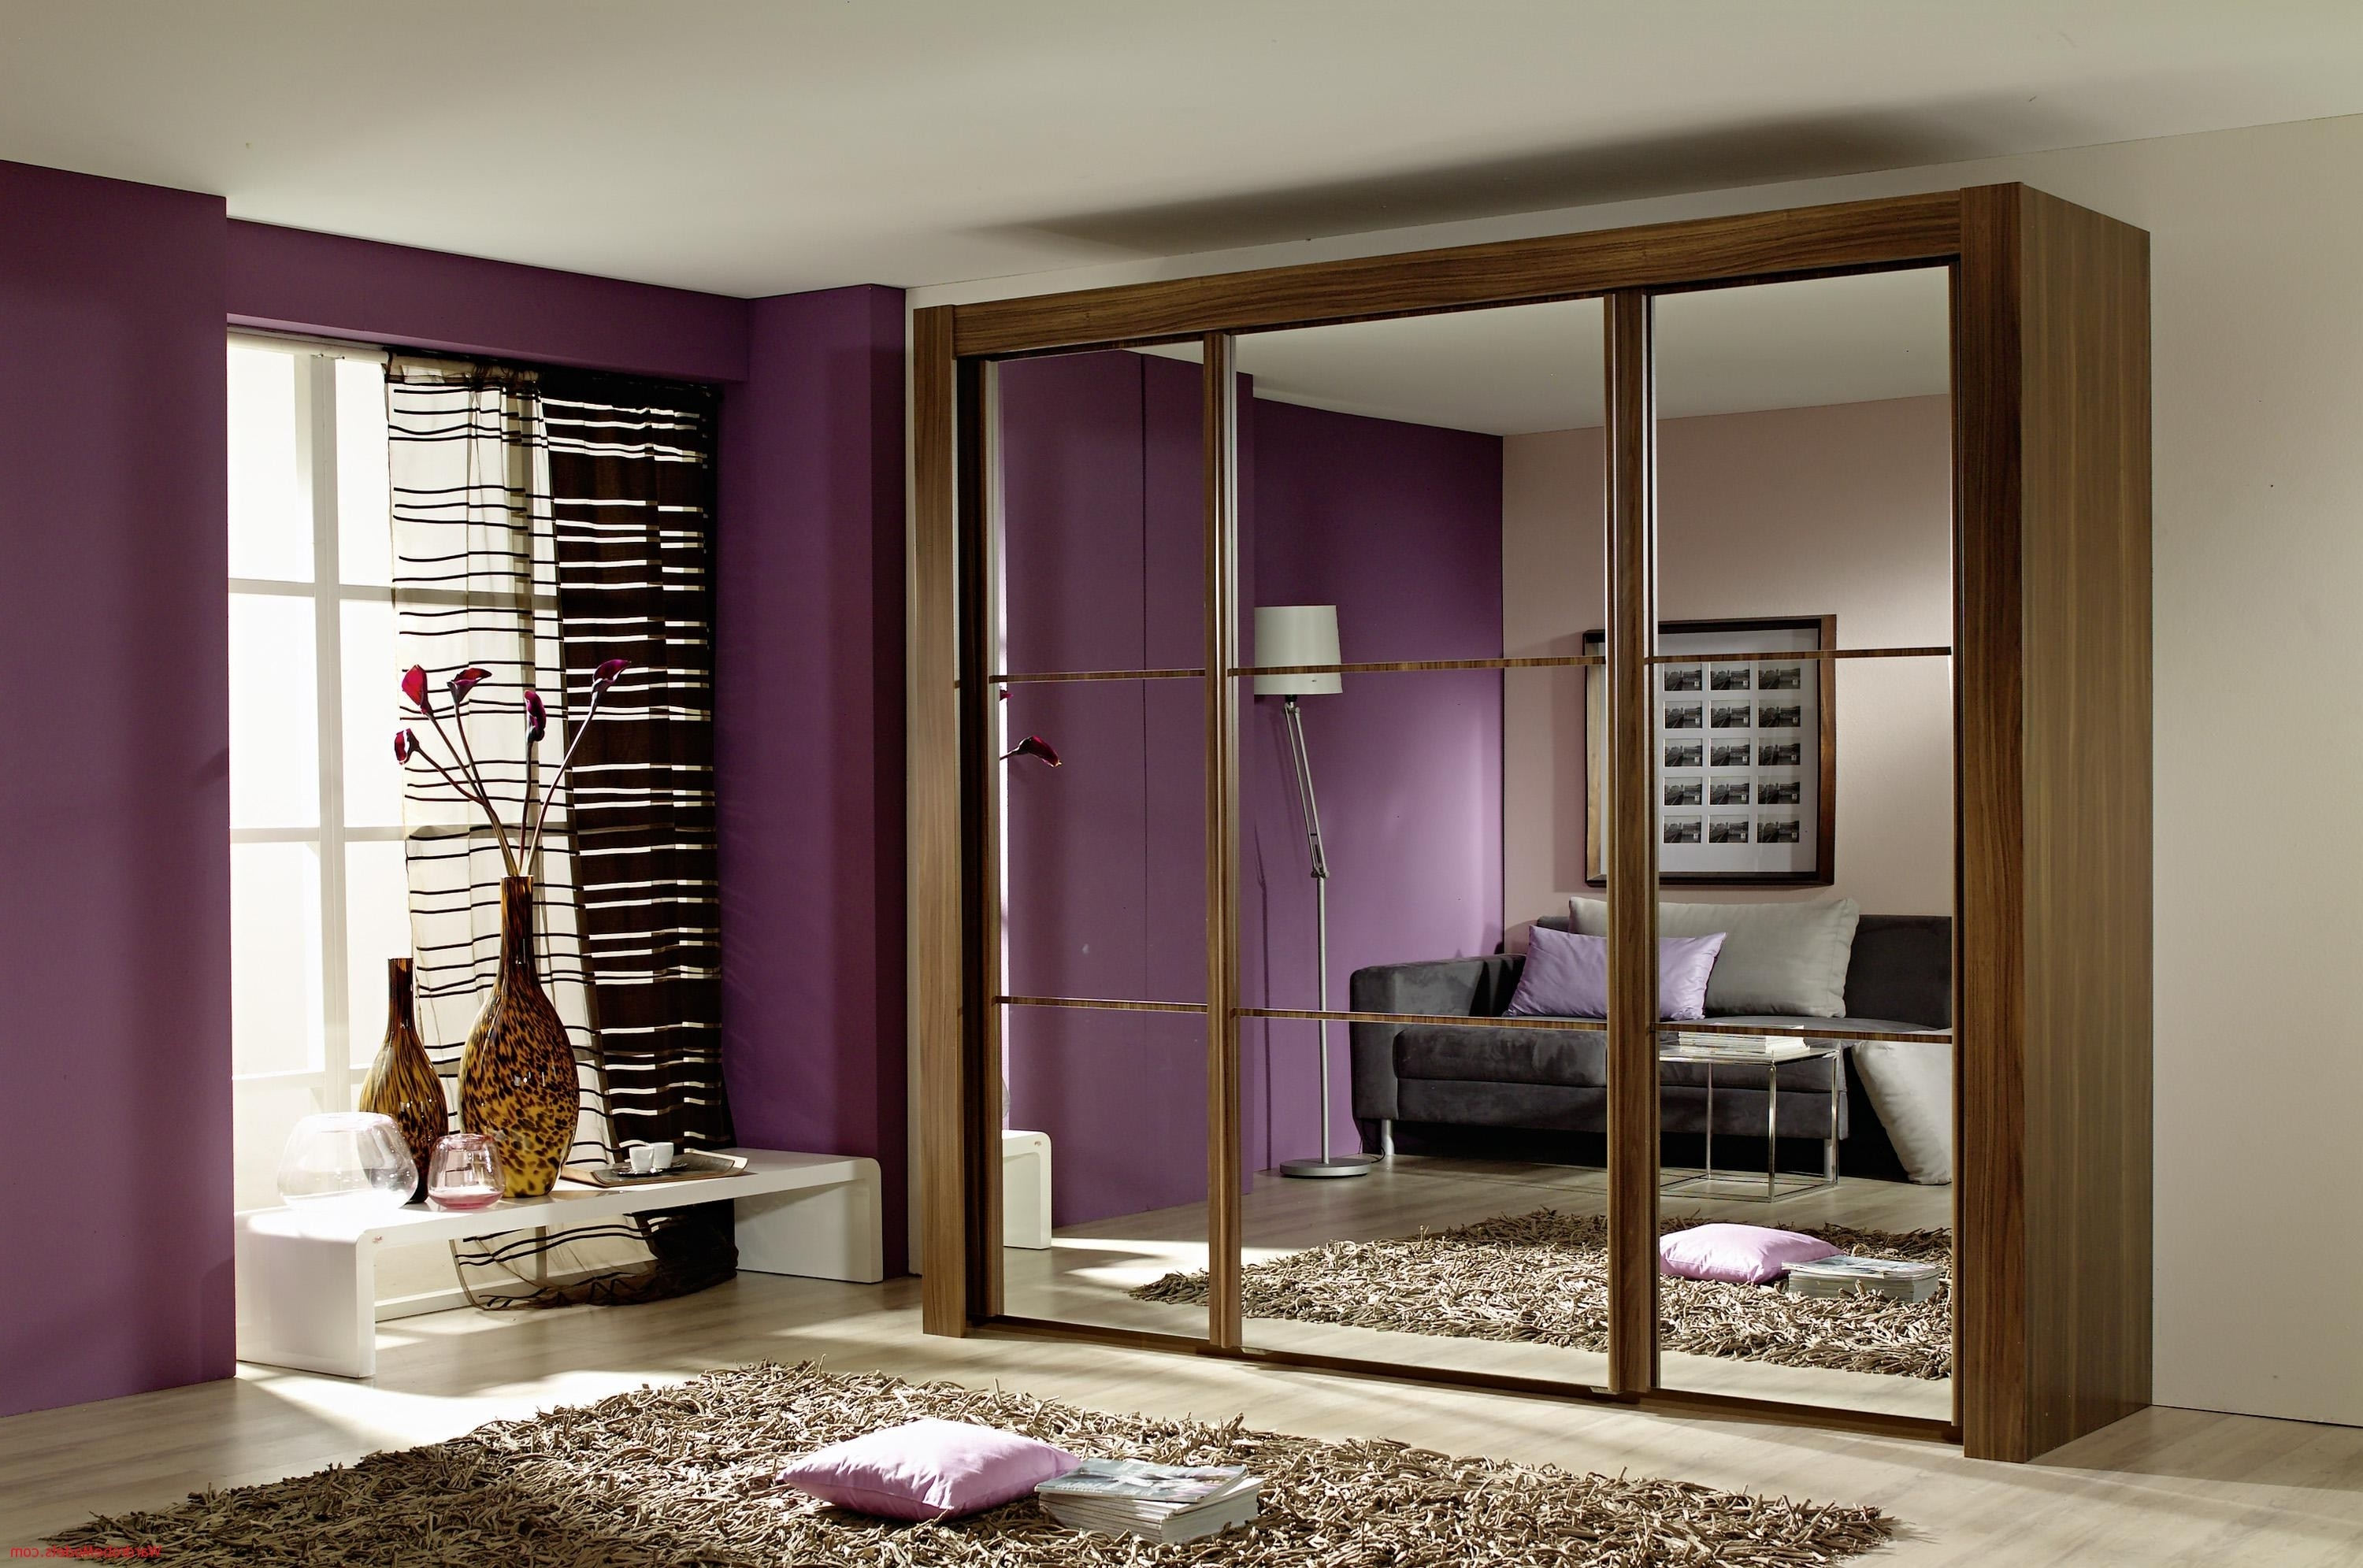 Dark Wood Wardrobes With Mirror Throughout Trendy Amazing Modern Small Bedroom With Brown Laminated Wooden Wardrobe (View 5 of 15)